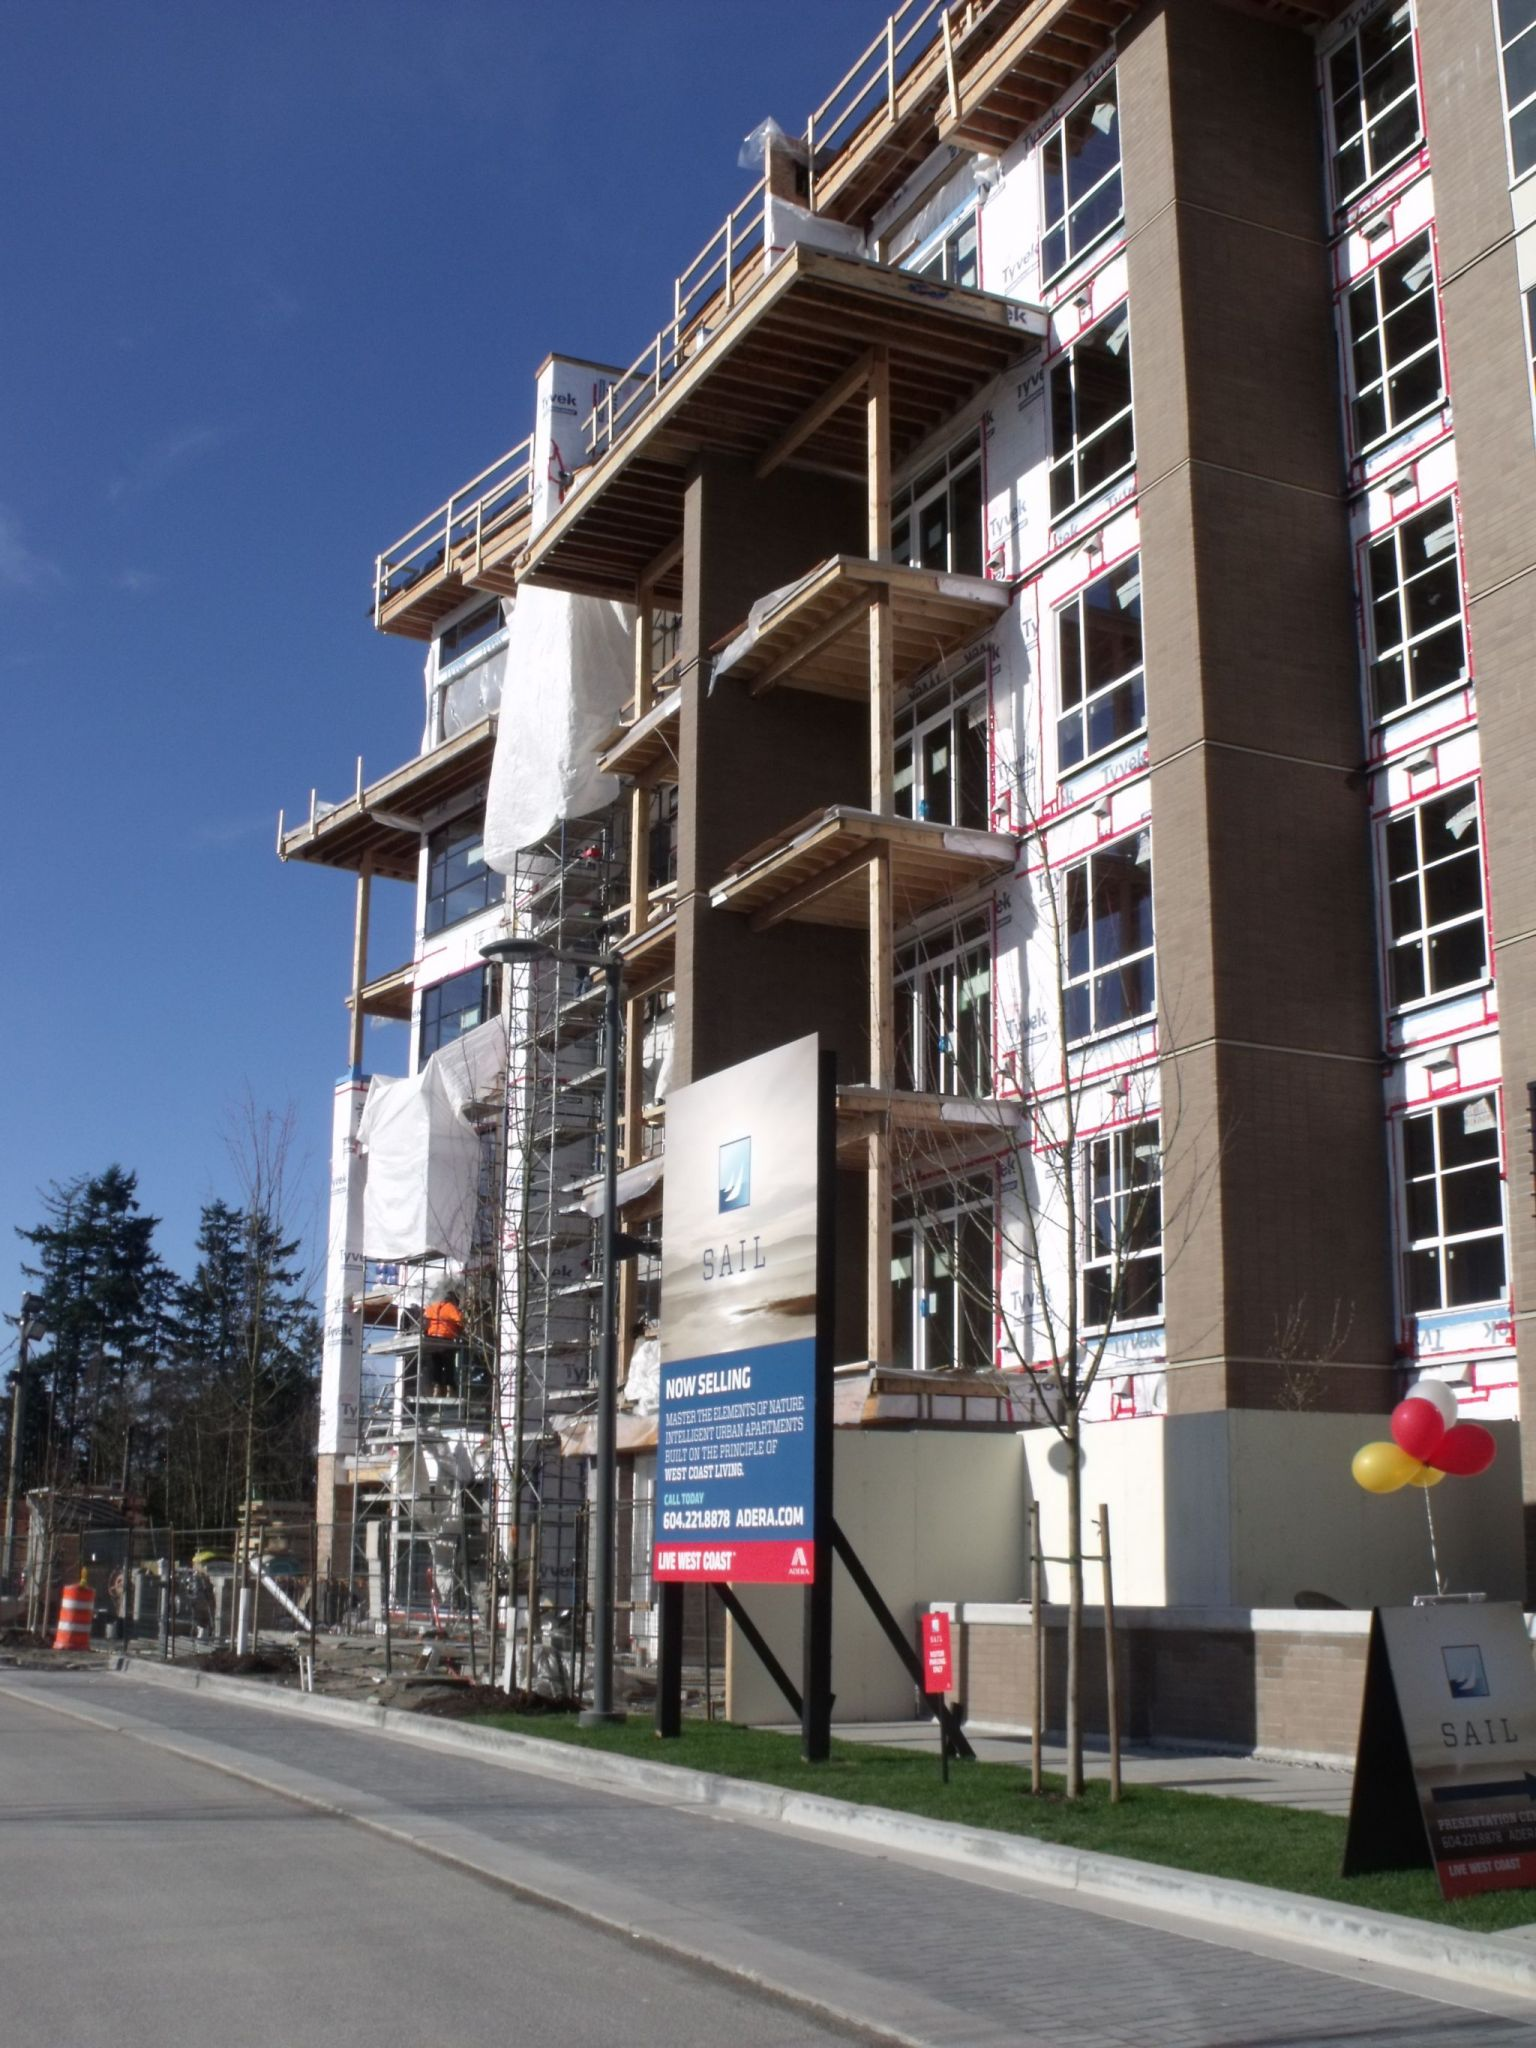 This photo shows the exterior of a six-storey condominium building under construction on University of British Columbia (UBC) Campus in Vancouver.